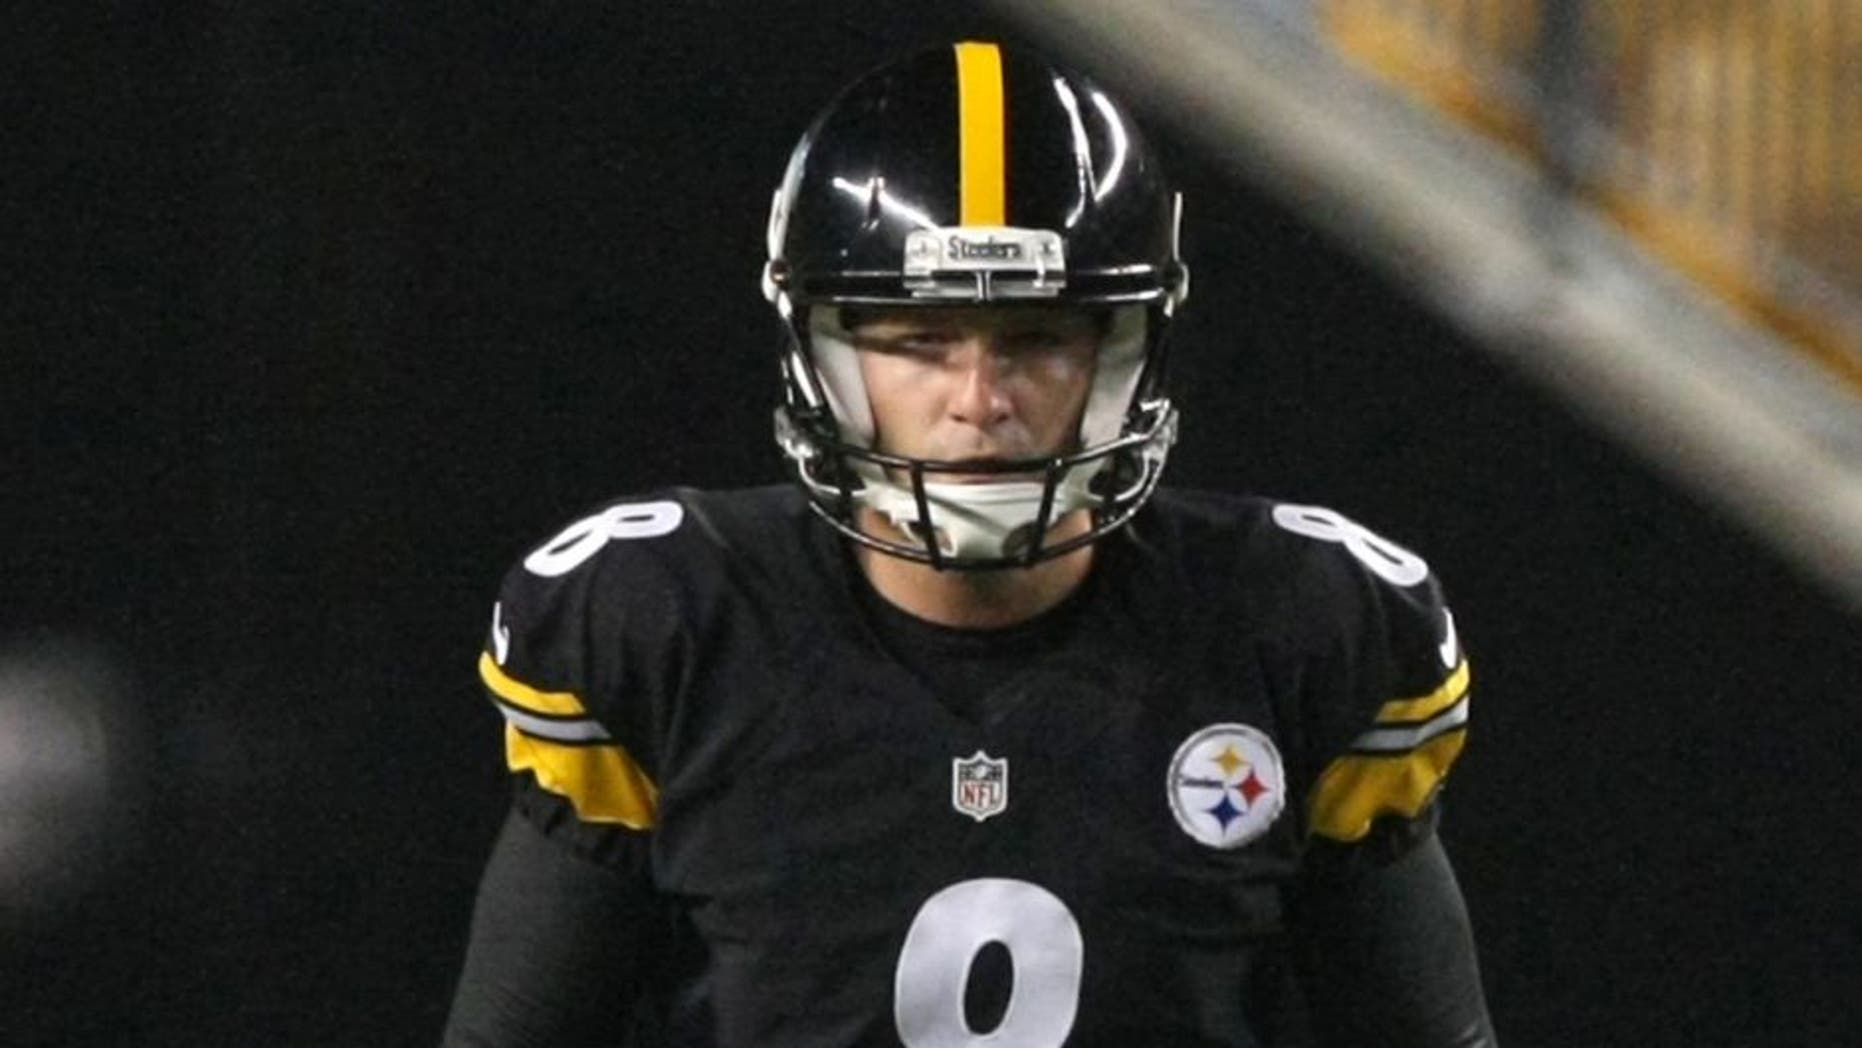 Sep 3, 2015; Pittsburgh, PA, USA; Pittsburgh Steelers kicker Josh Scobee (8) prepares to kick off against the Carolina Panthers during the second half at Heinz Field. The Panthers won the game, 23-6. Mandatory Credit: Jason Bridge-USA TODAY Sports